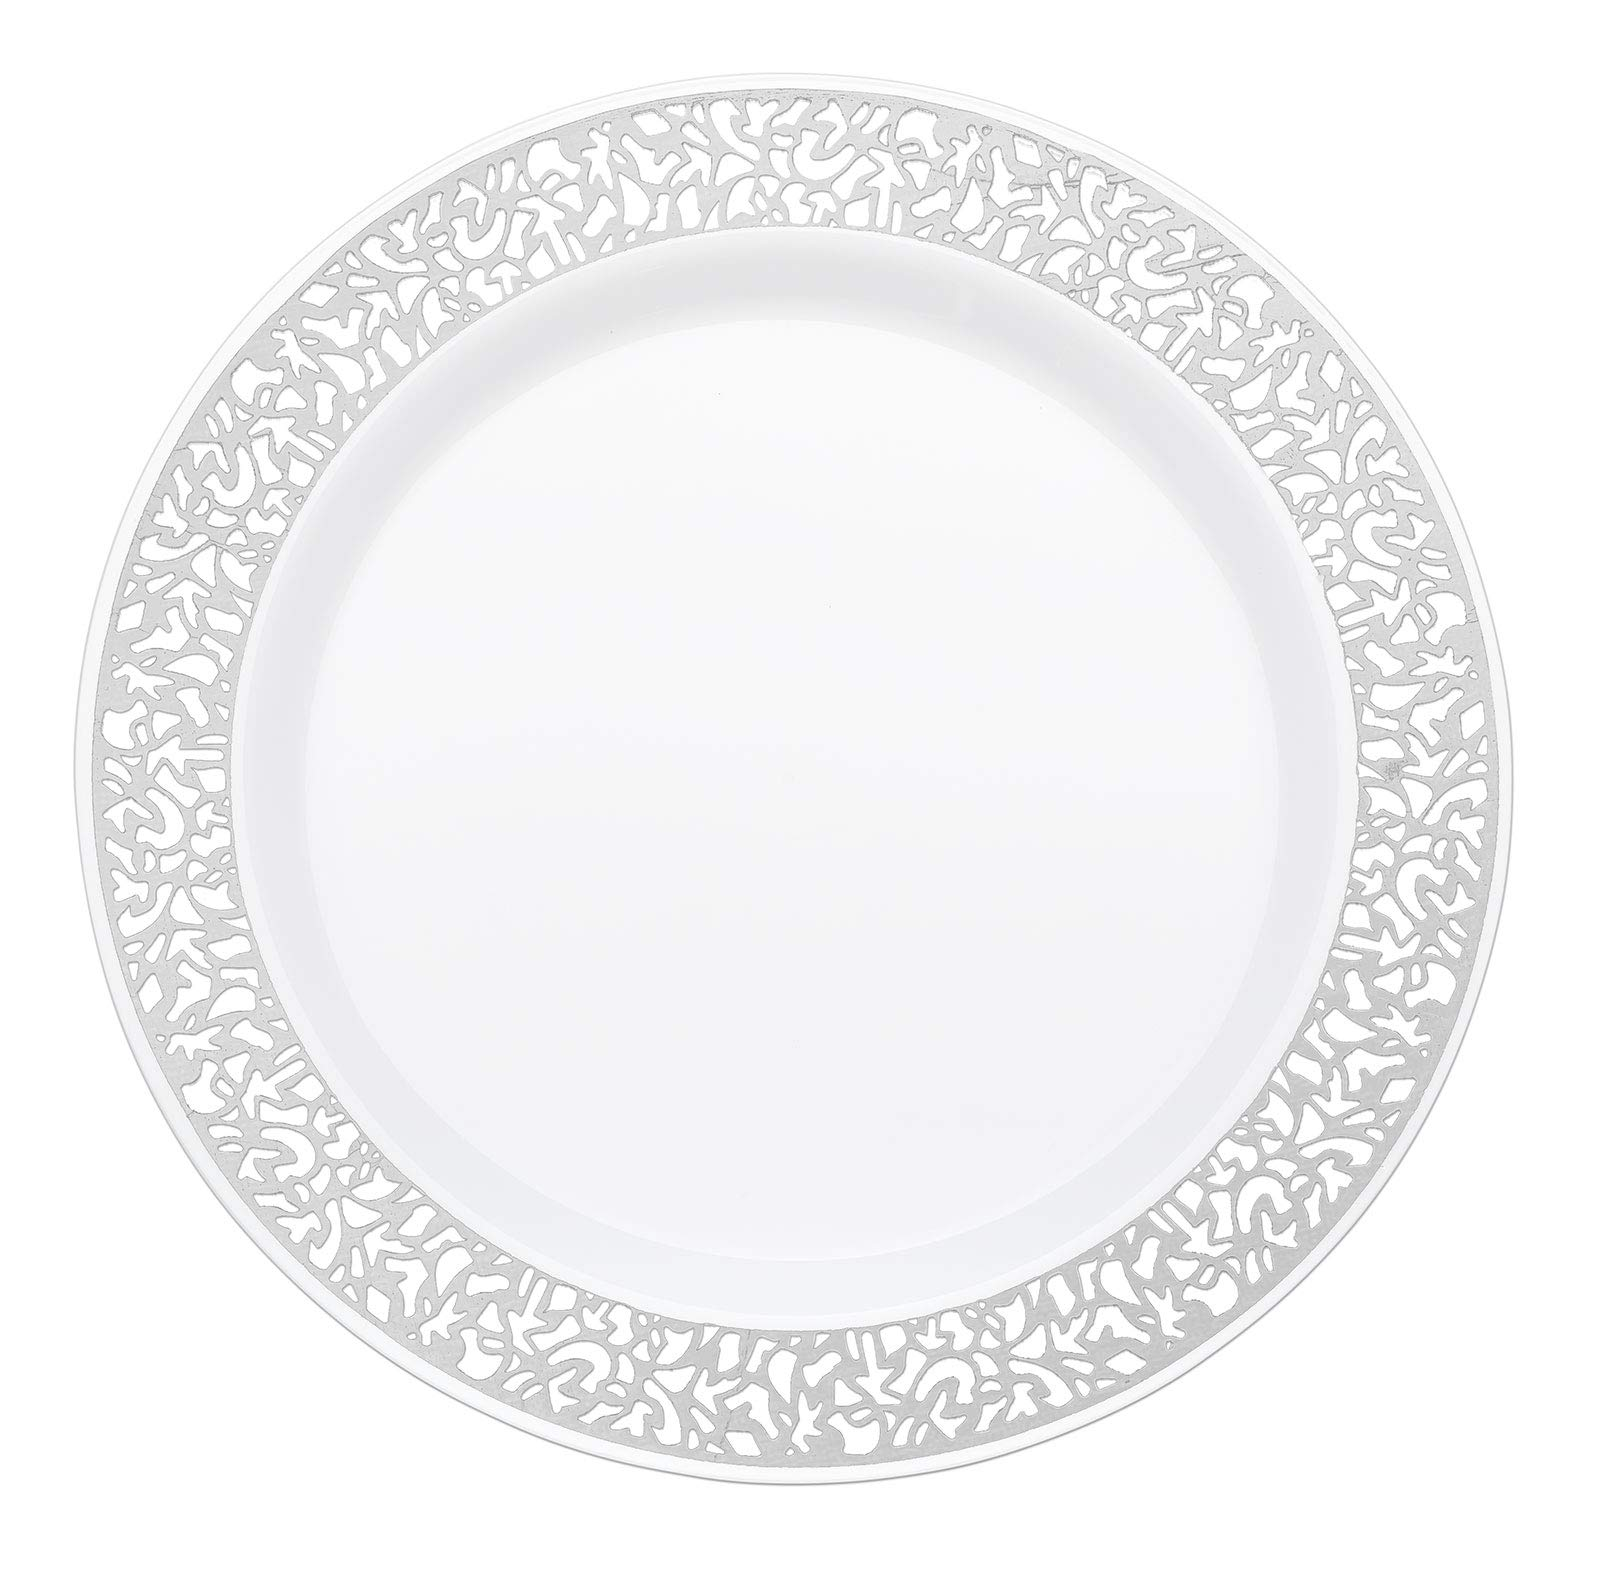 Your Gatherings - 606pc/100 Guest Silver Premium Disposable Wedding Dinnerware Set | 100 Dinner Plates, 100 Dessert Plates, 200 Forks, 100 Spoons, 100 Knives, (100 Guest Set, Silver) by Your Gatherings (Image #4)